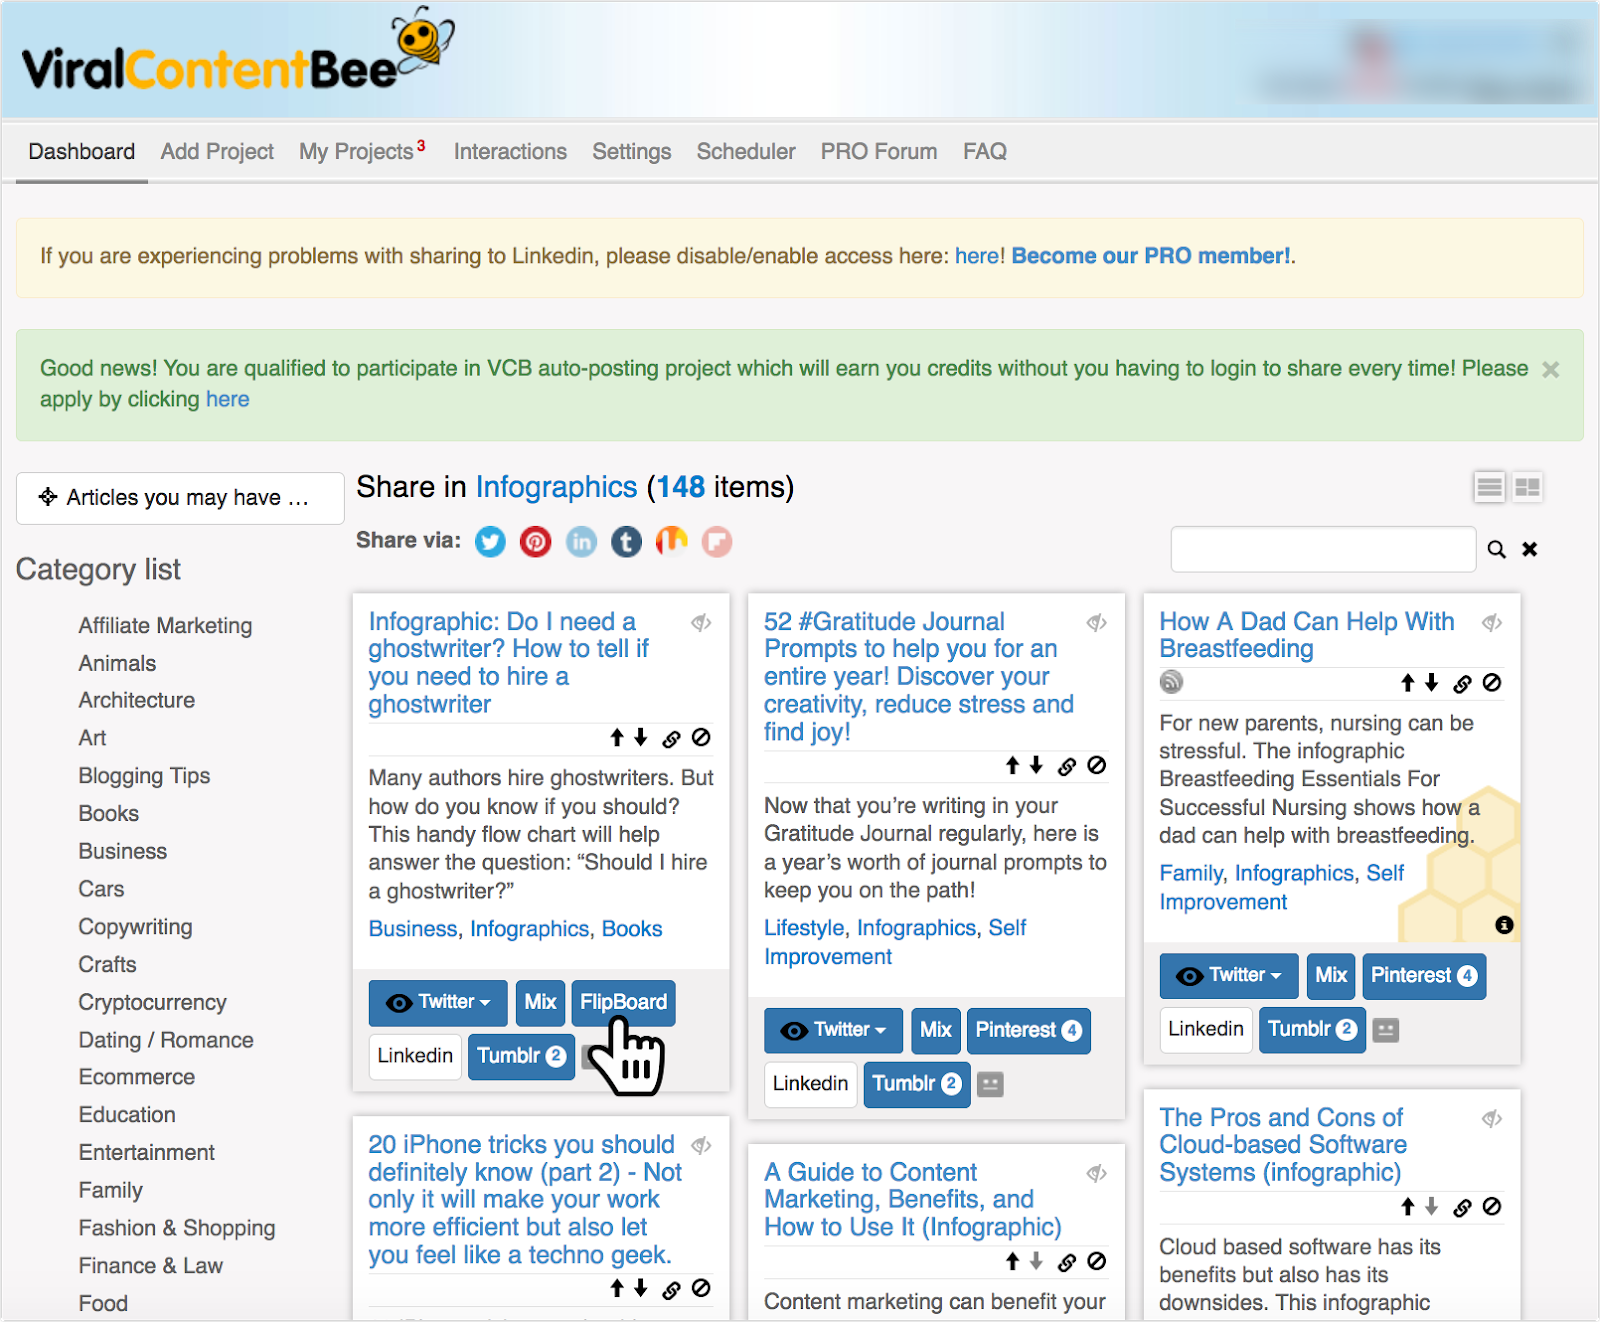 viralcontentbee promote